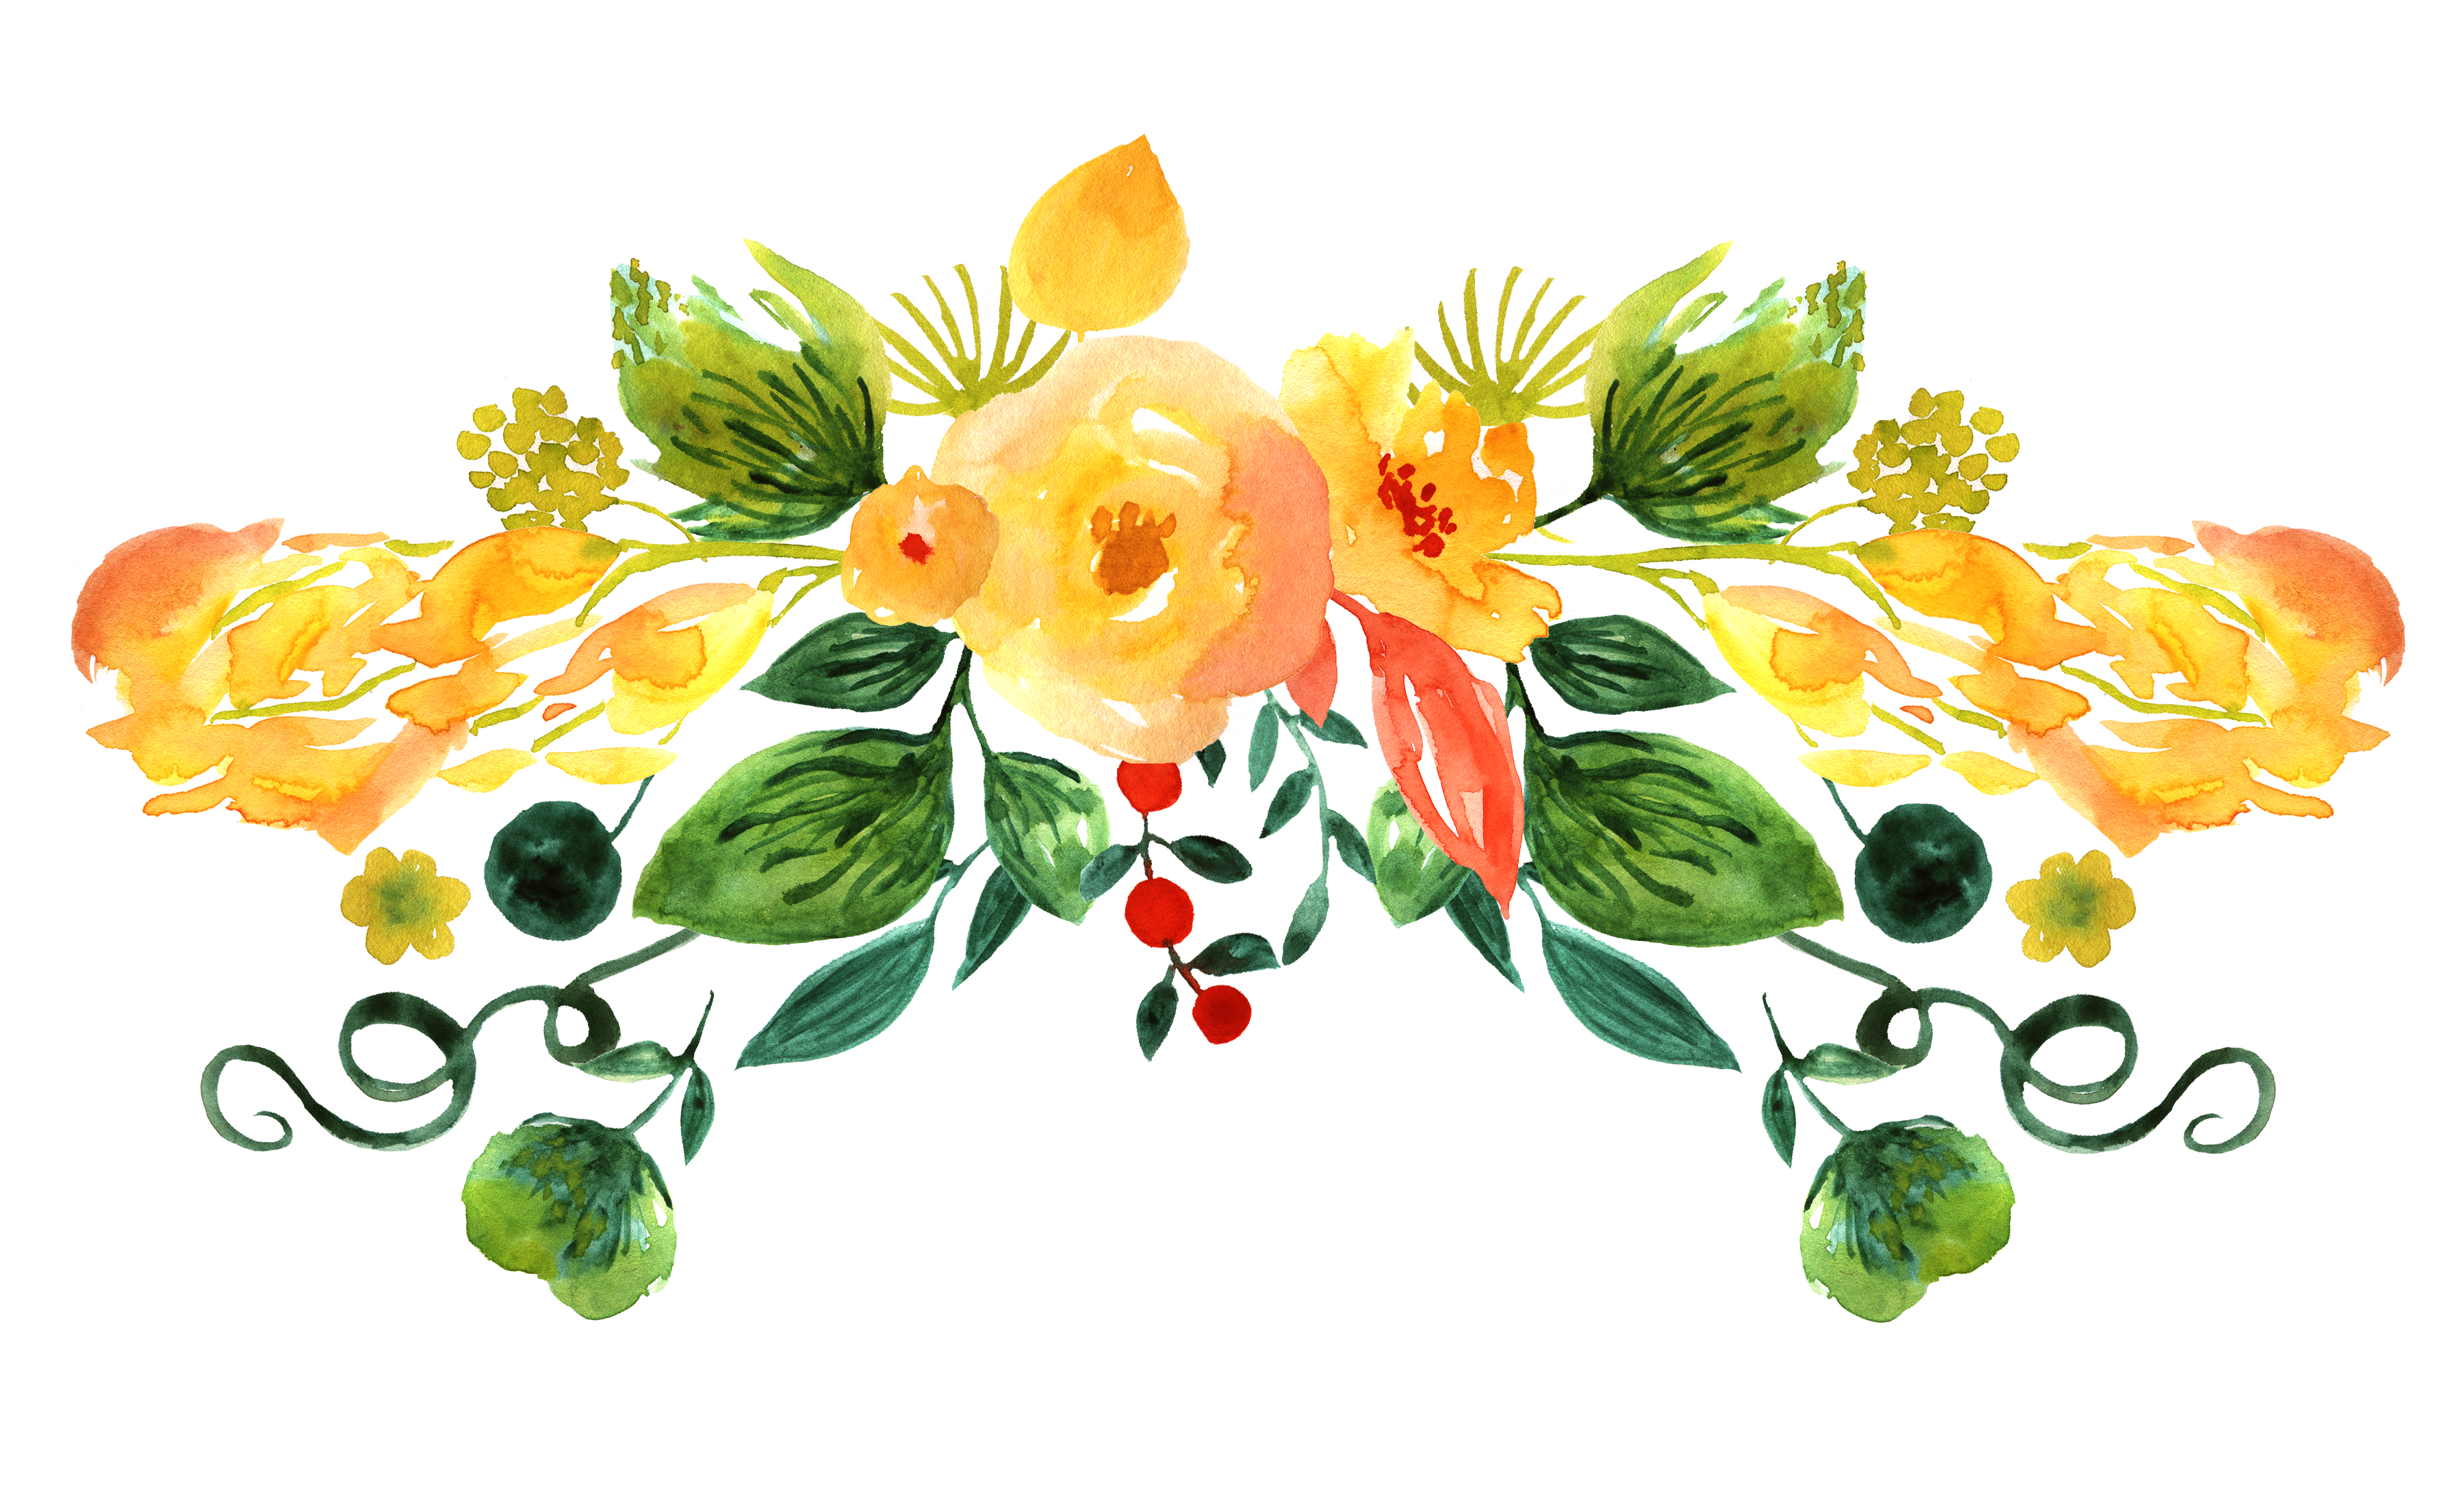 Flores dibujo png. Floral design watercolor painting